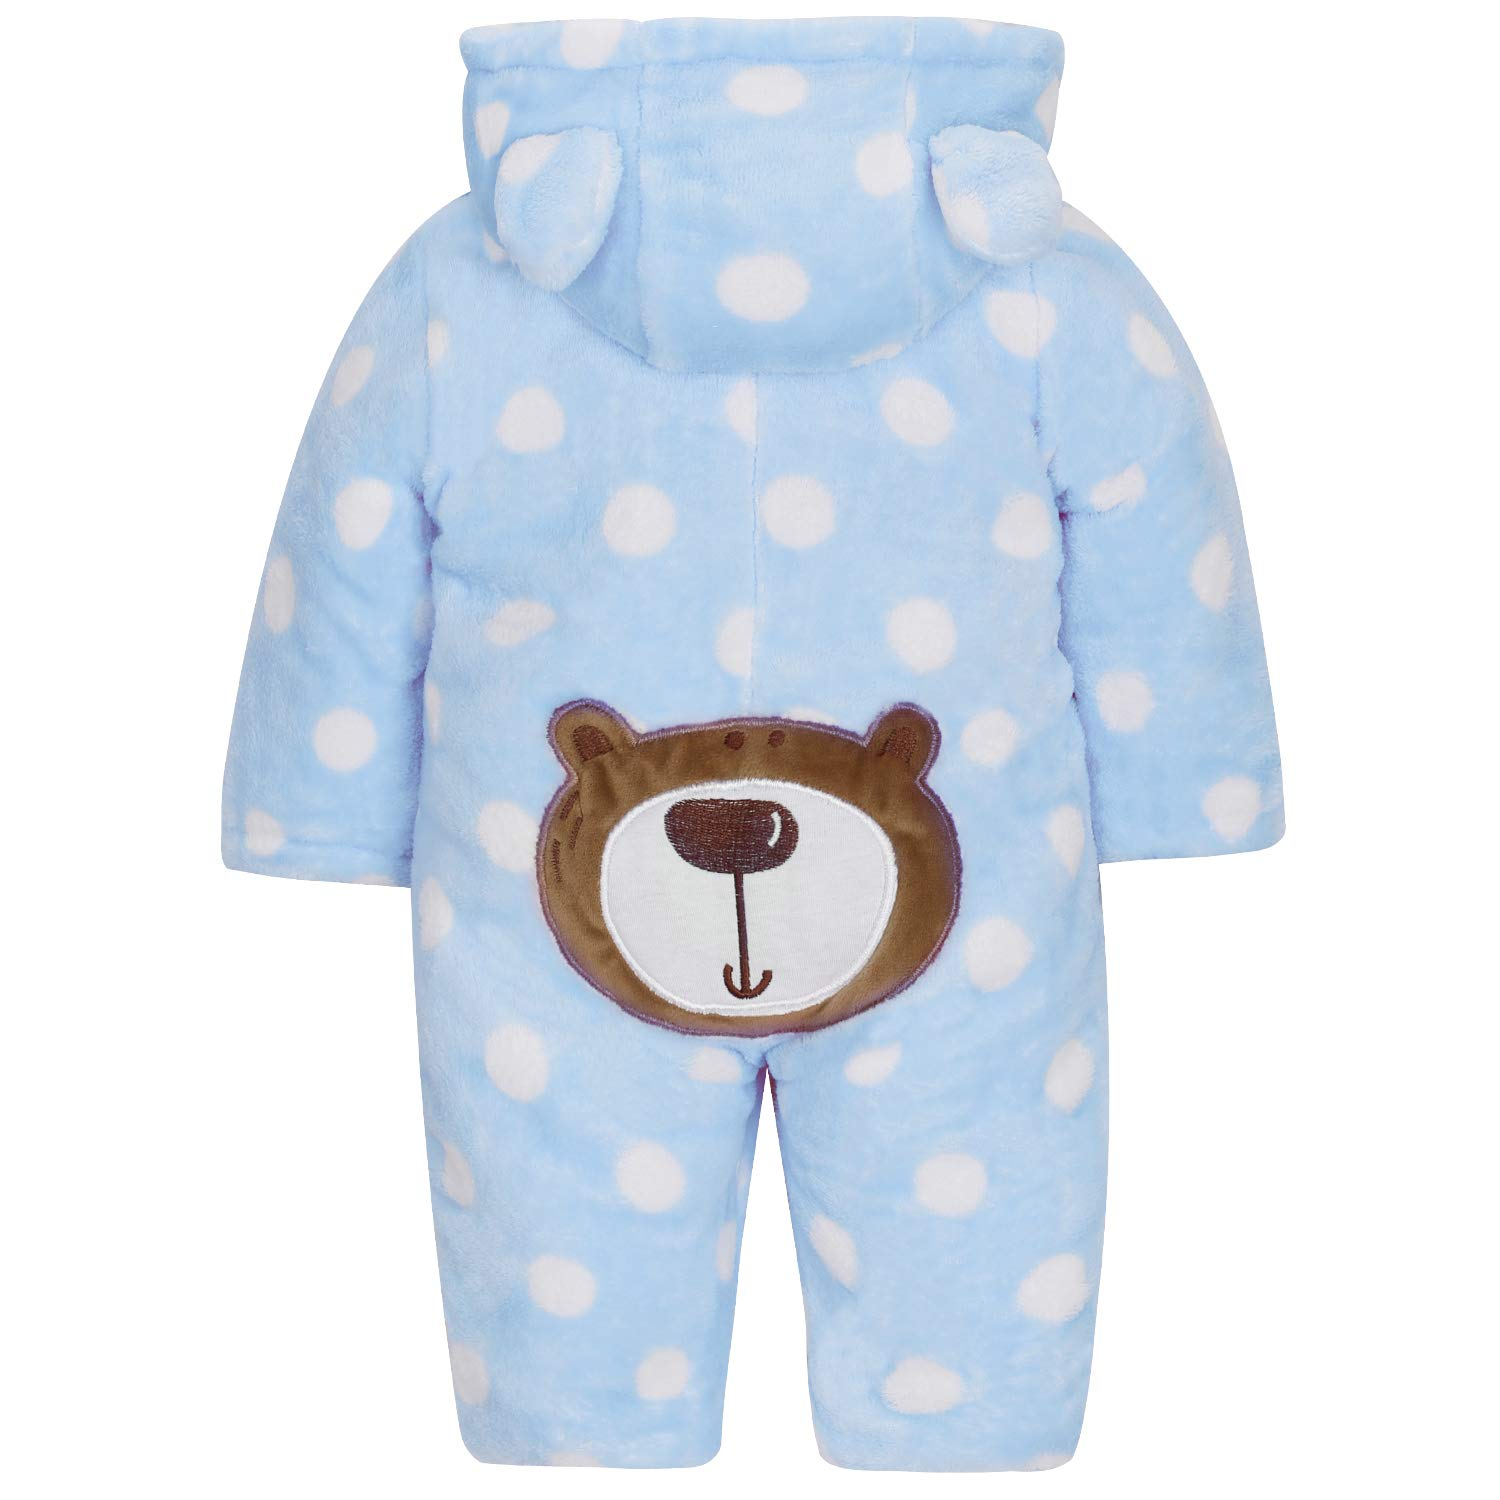 SANMIO Baby Hooded Romper Fleece Snowsuit Infant Onesies Footed Jumpsuit Fall Winter Outwear Outfits